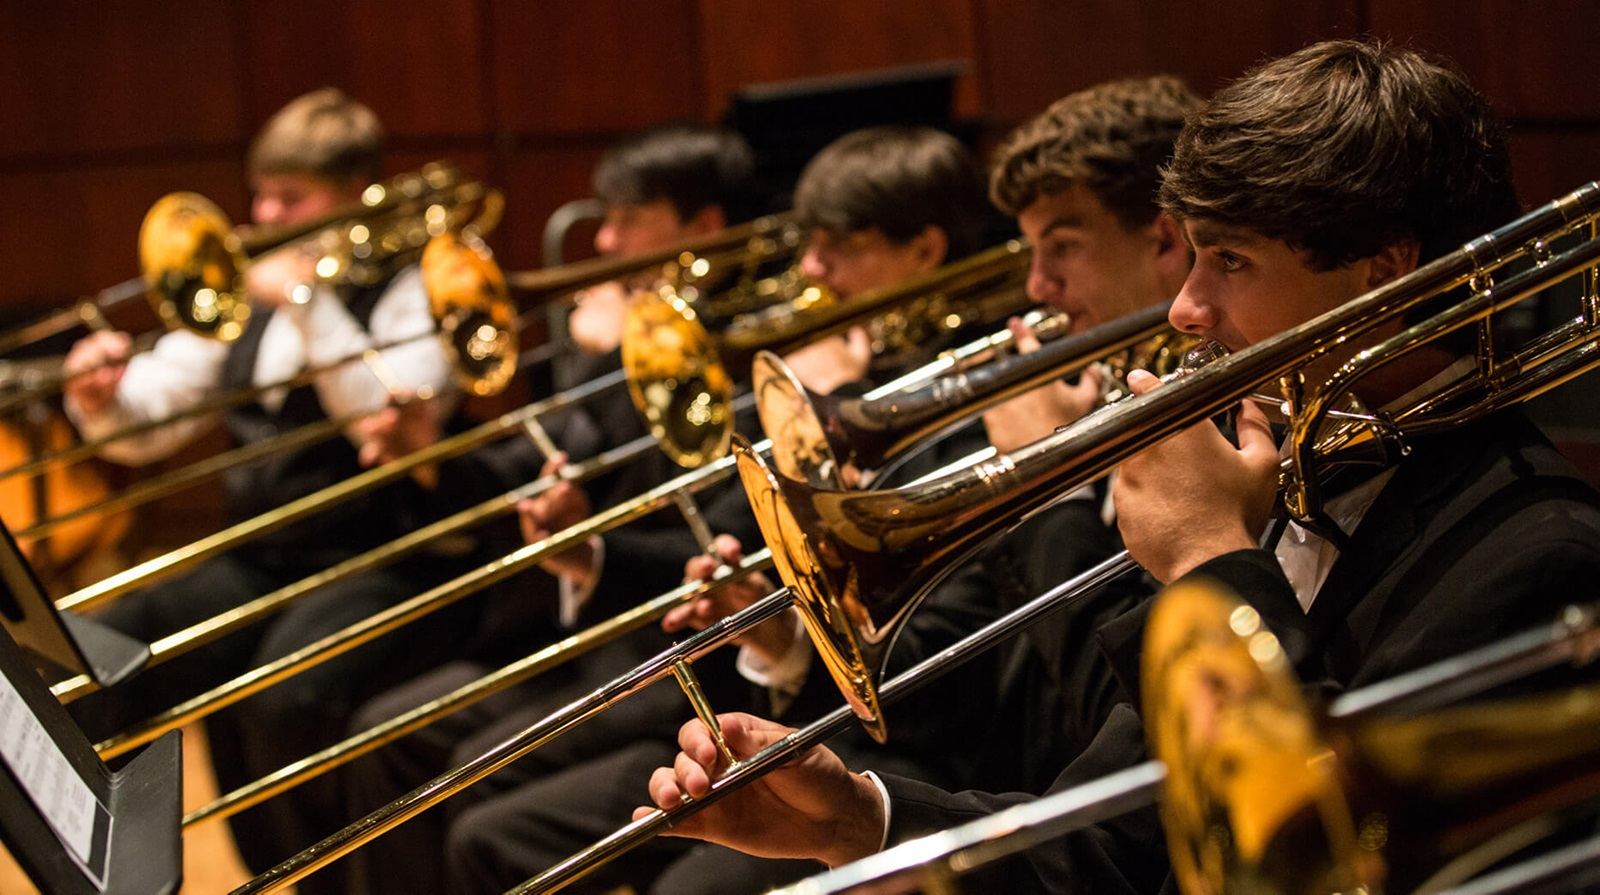 row of trombonists performing in an orchestra